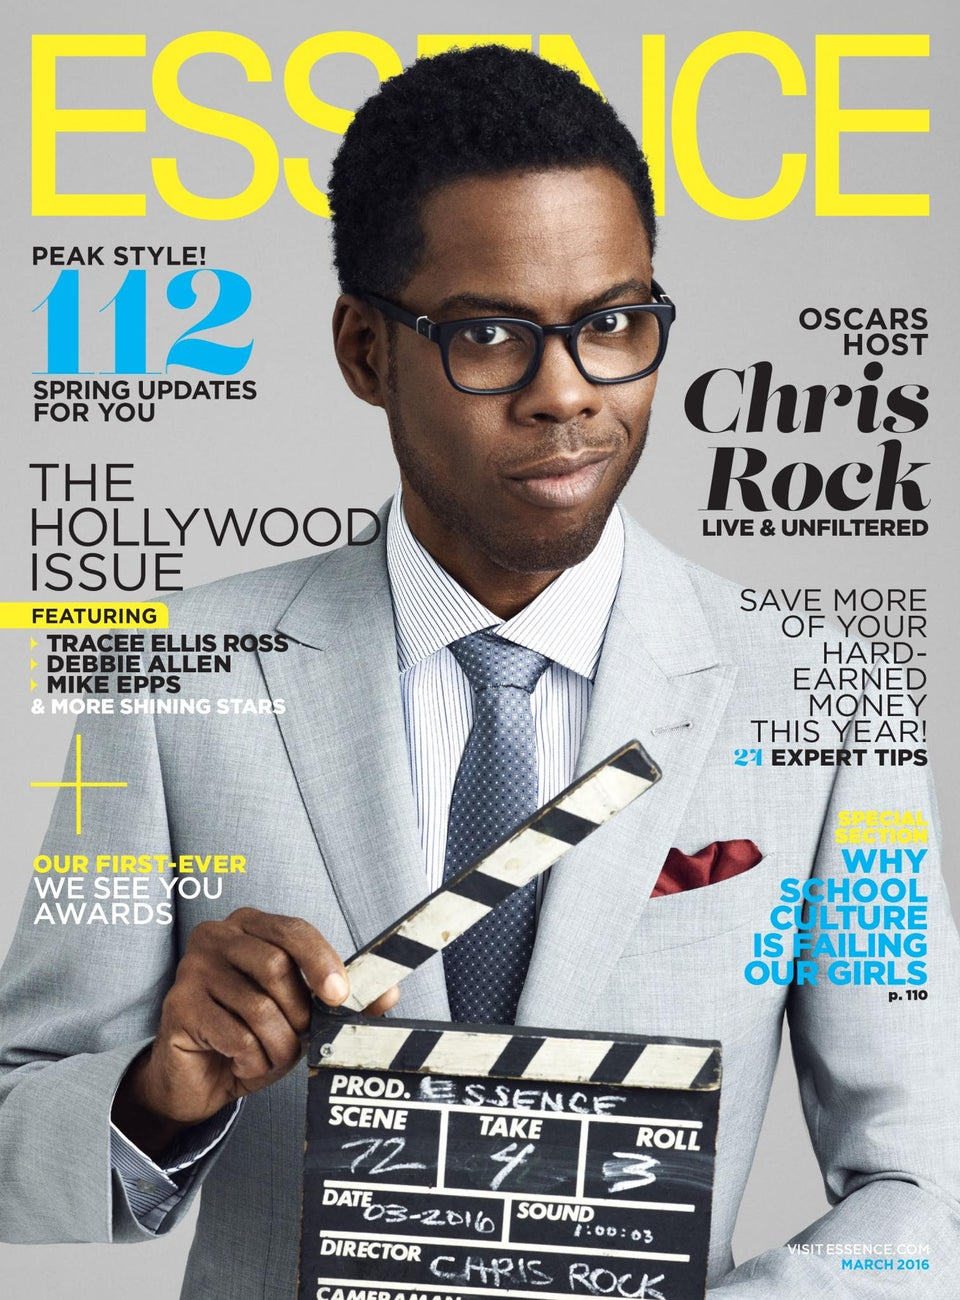 Chris Rock Graces First ESSENCE Cover, Talks Roles for Black Women in Hollywood